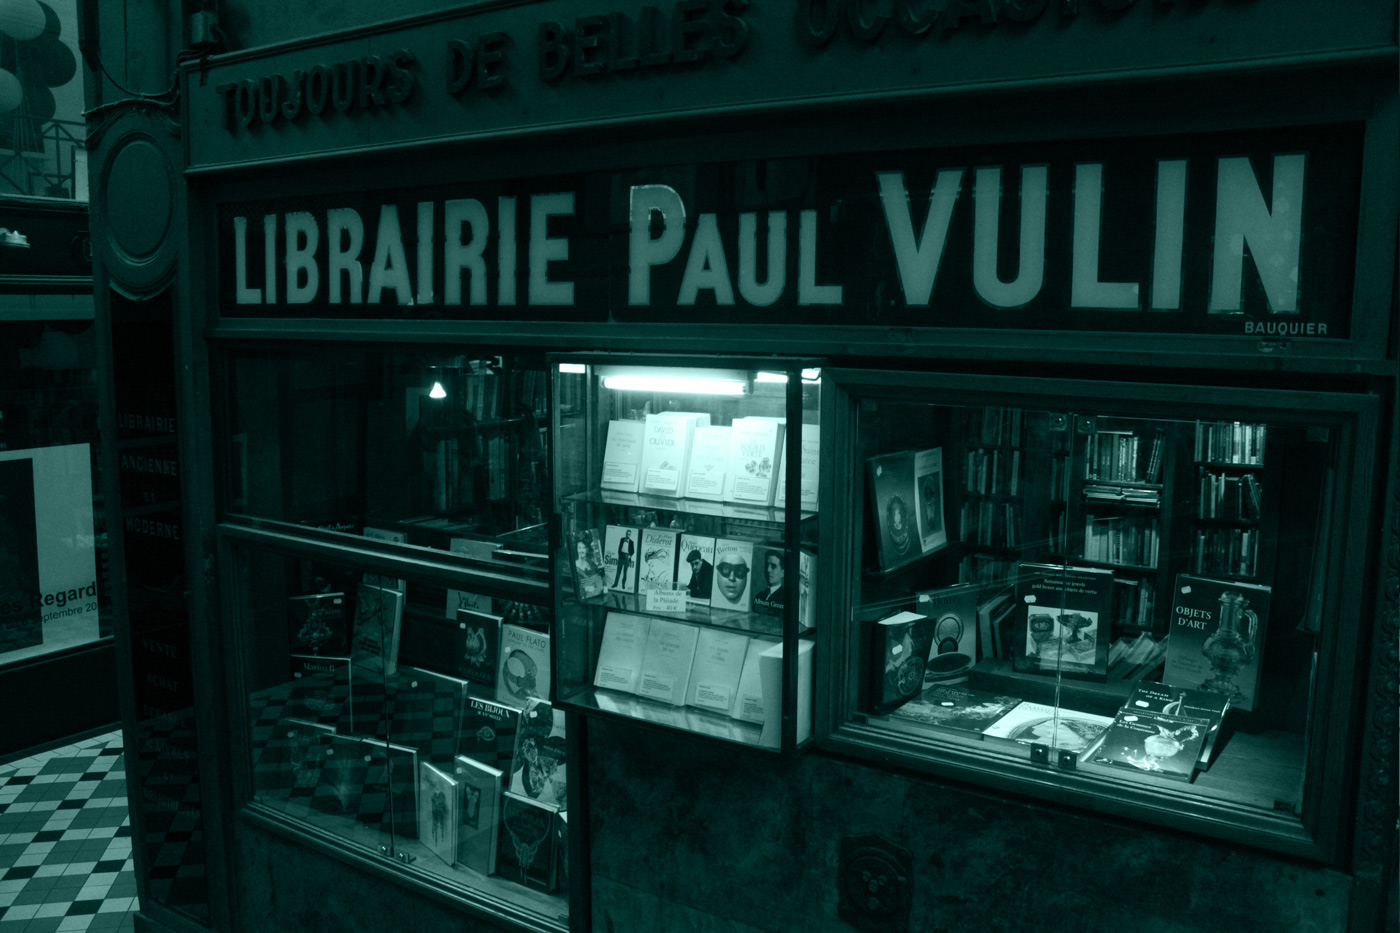 Paris arcade bookshop